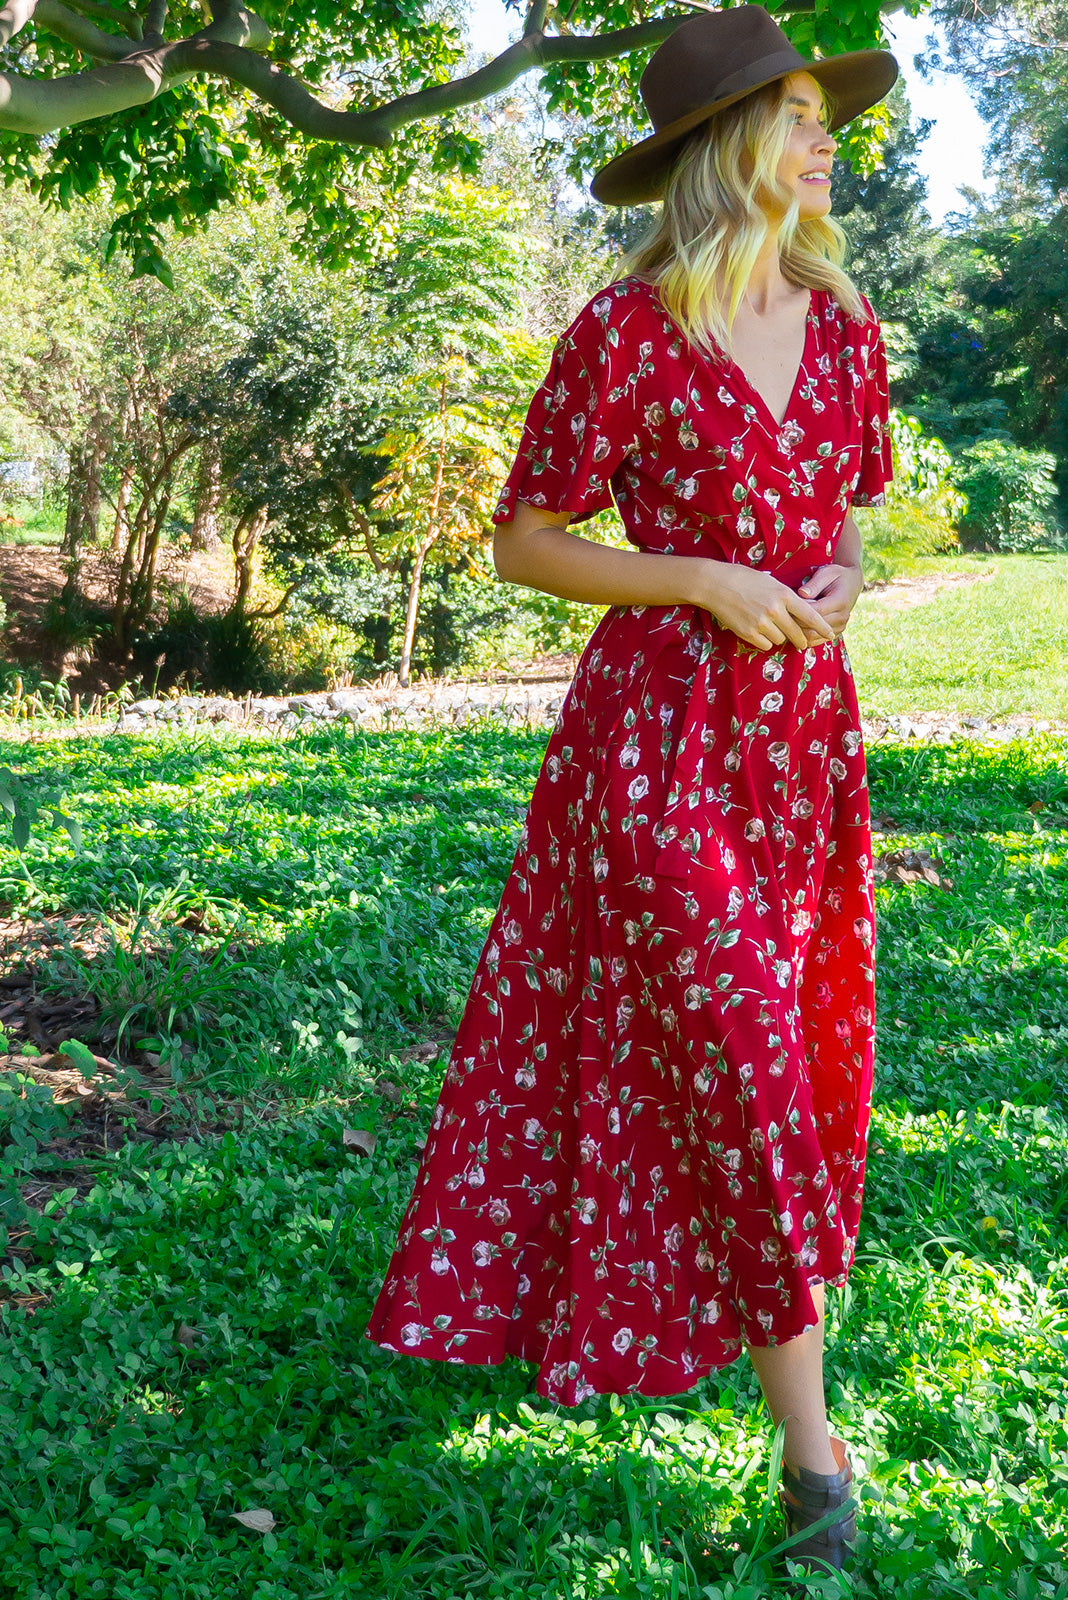 The Petal Red Rosebud Maxi Wrap Dress features plunging neckline, floaty petal sleeves, deep side pockets and 100 % rayon in red base with rose print.